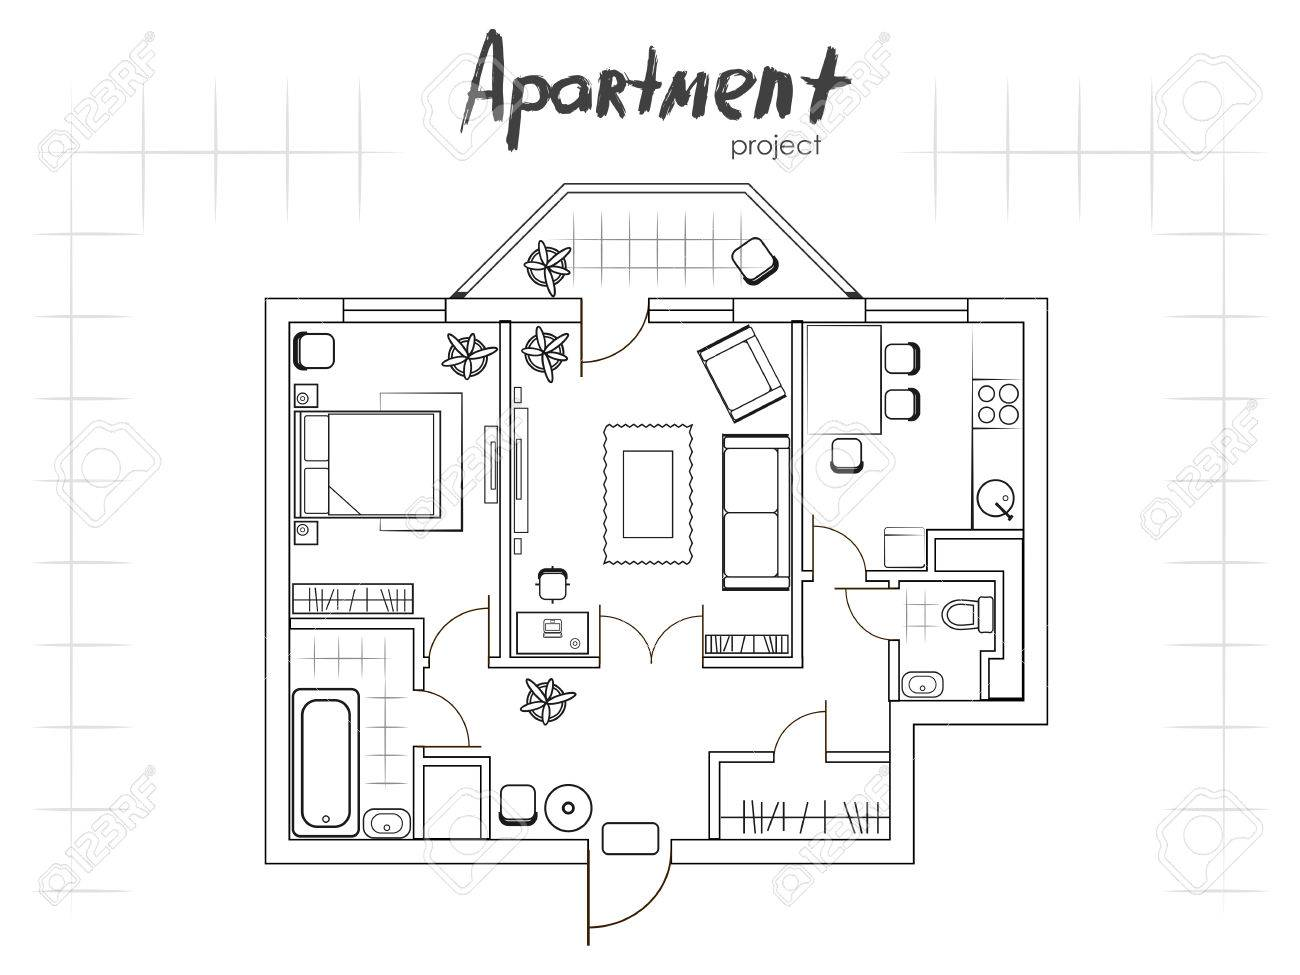 Apartment Project Floor Plan With Furniture Kitchen Living Royalty Free Cliparts Vectors And Stock Illustration Image 58034858